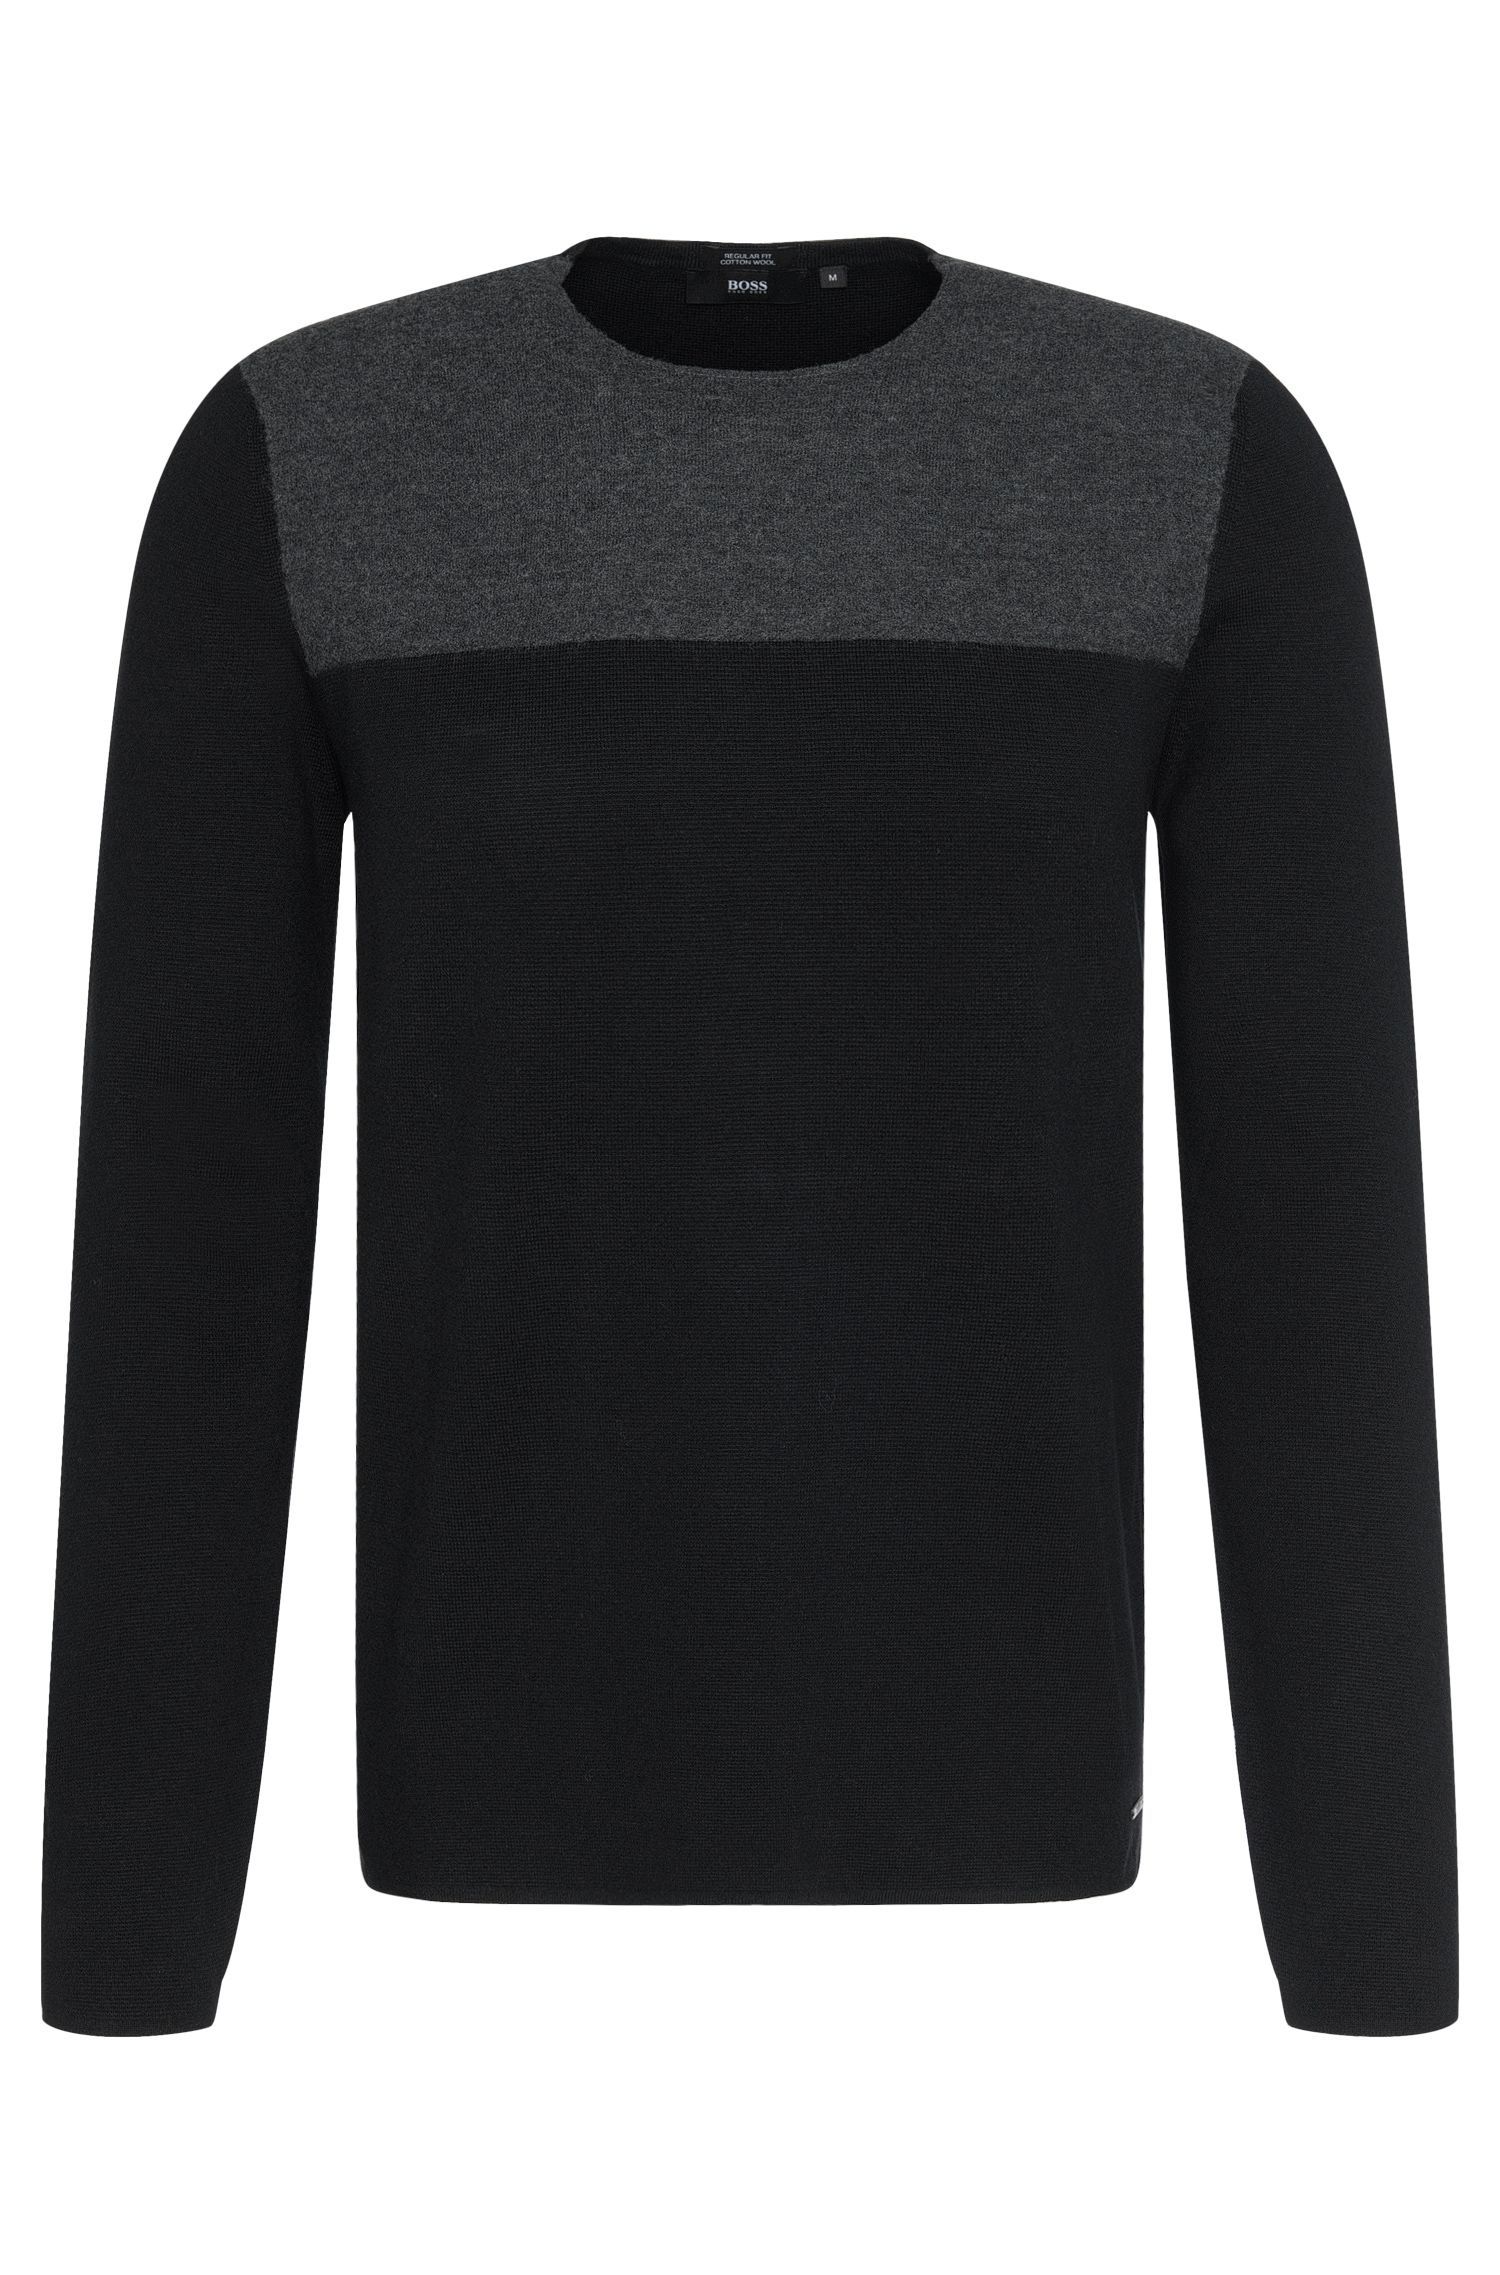 Regular-Fit Pullover aus Baumwoll-Schurwoll-Mix: 'Brevo'